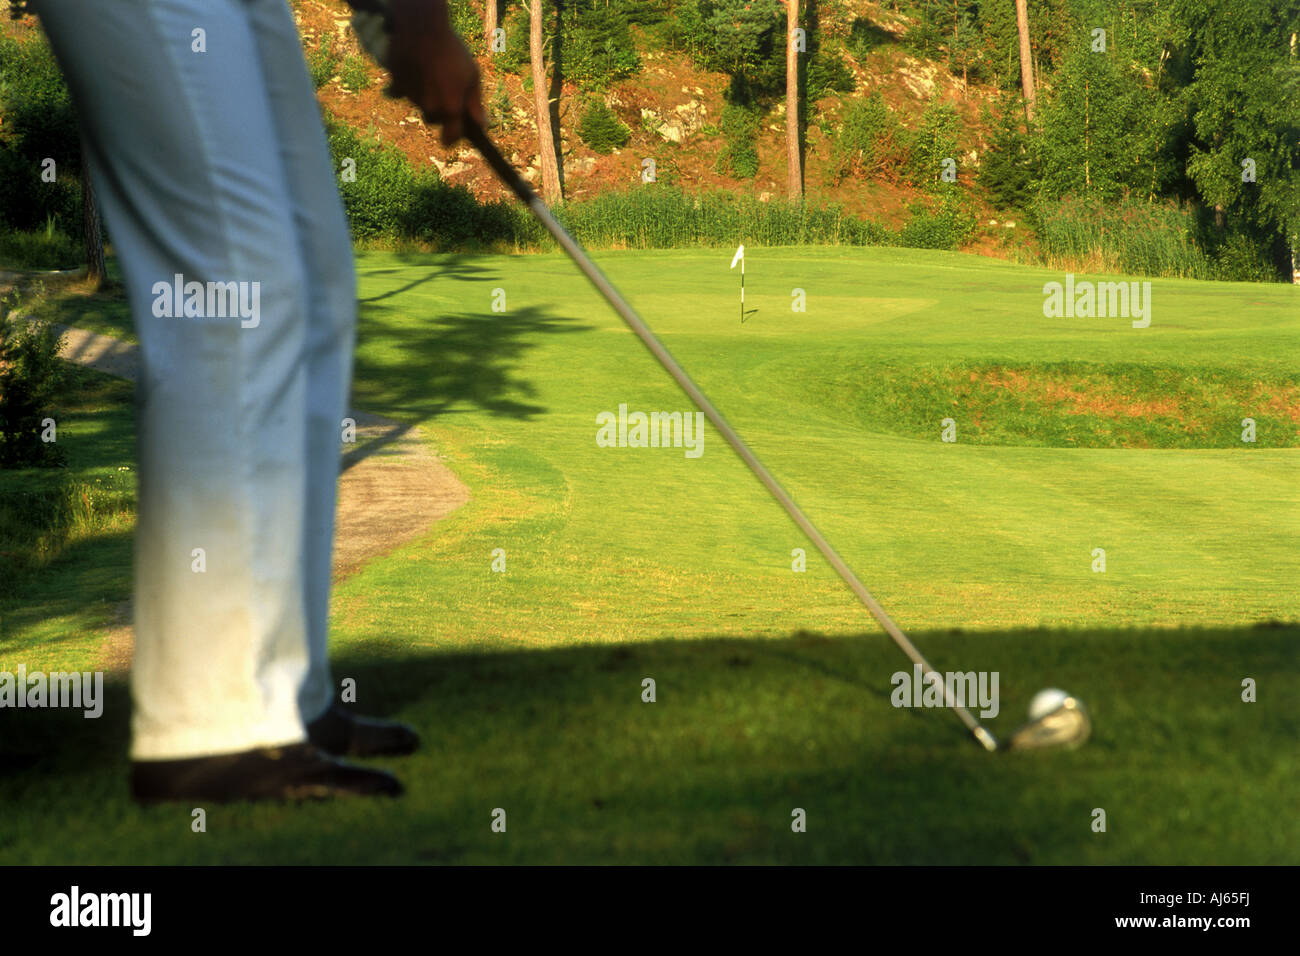 Golfer hitting with iron off lush green fairway - Stock Image